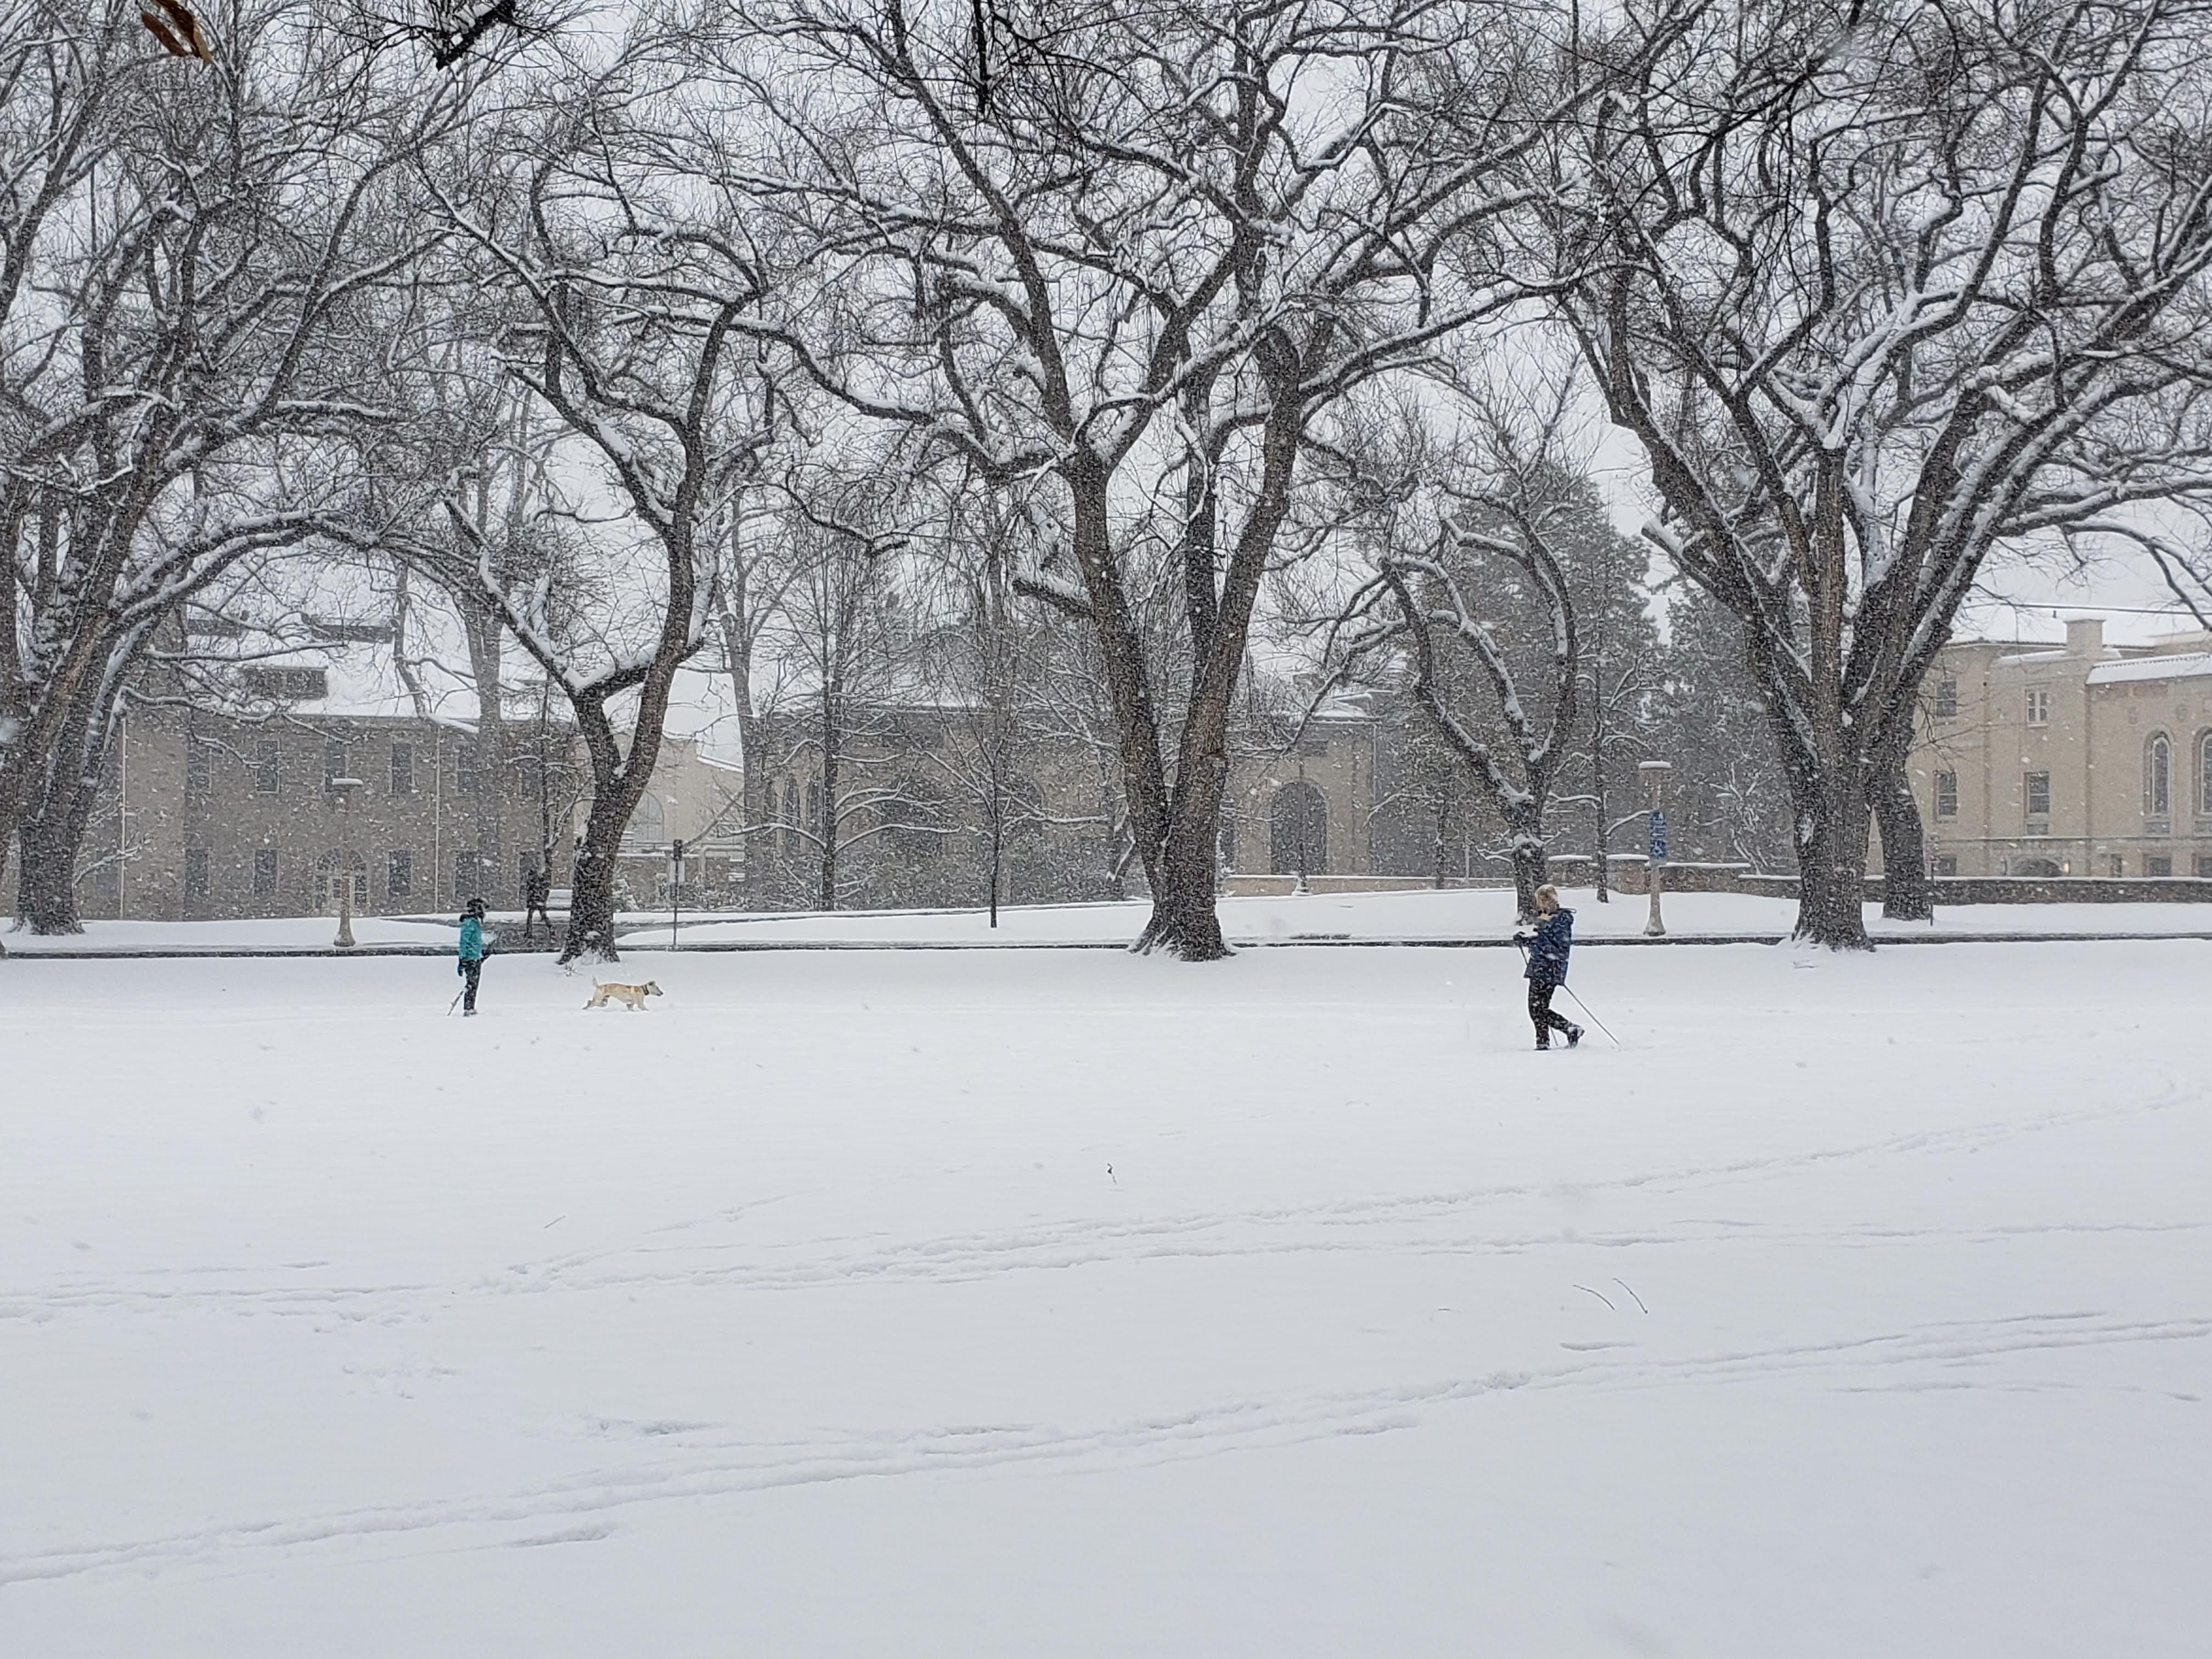 People ski around the Oval on the CSU campus with their dog on a snowy Veteran's Day Nov. 11, 2018.